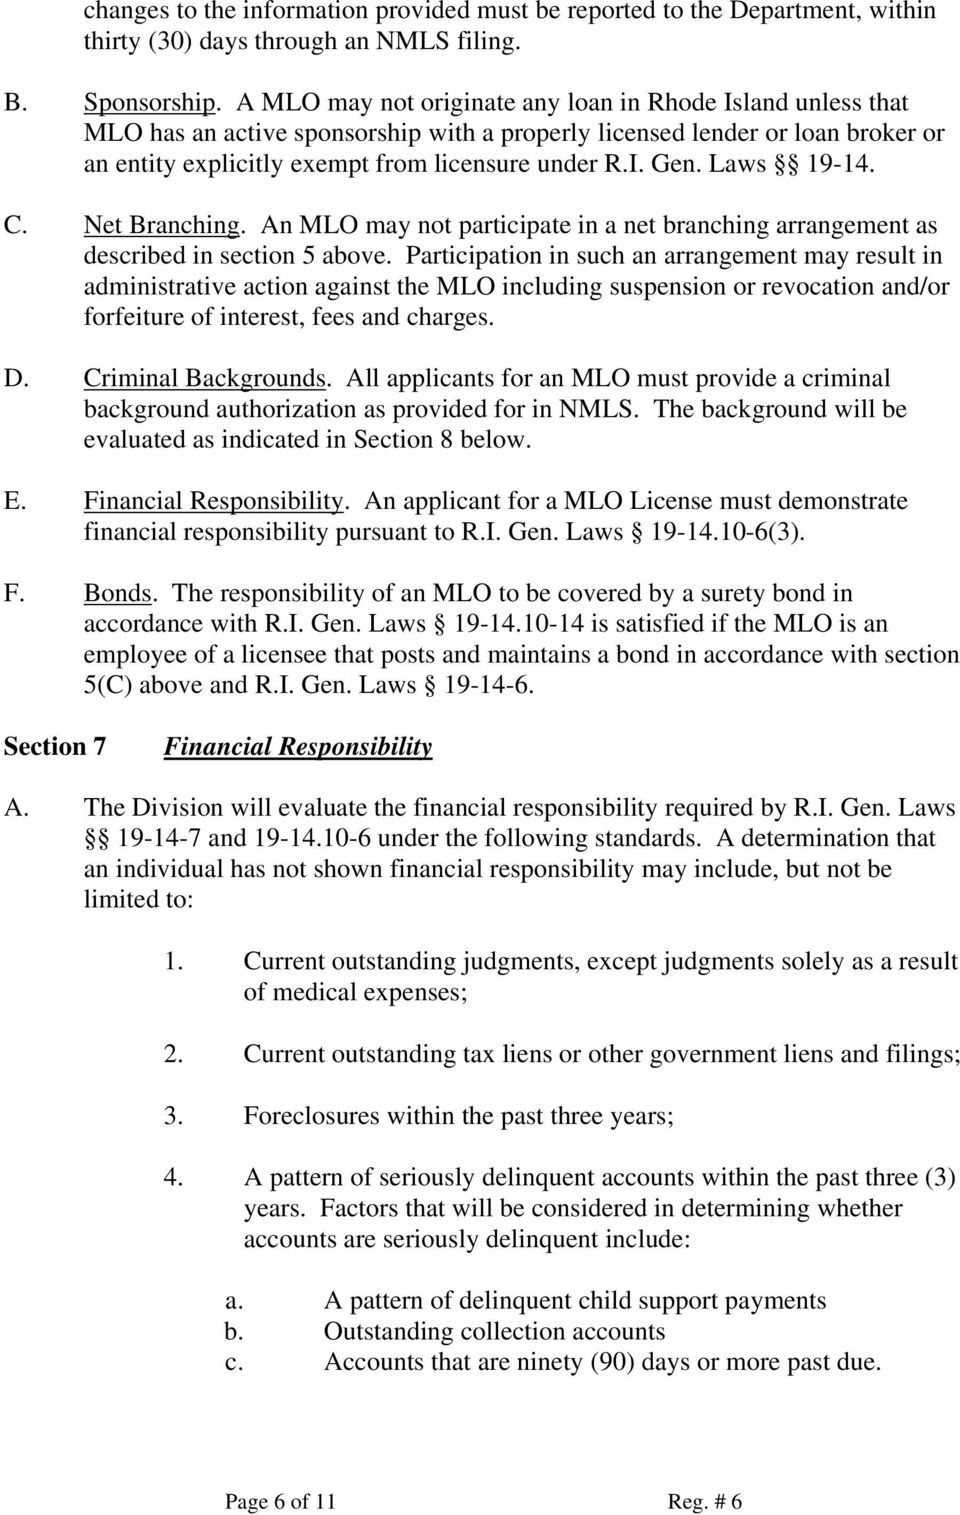 Laws 19-14. C. Net Branching. An MLO may not participate in a net branching arrangement as described in section 5 above.